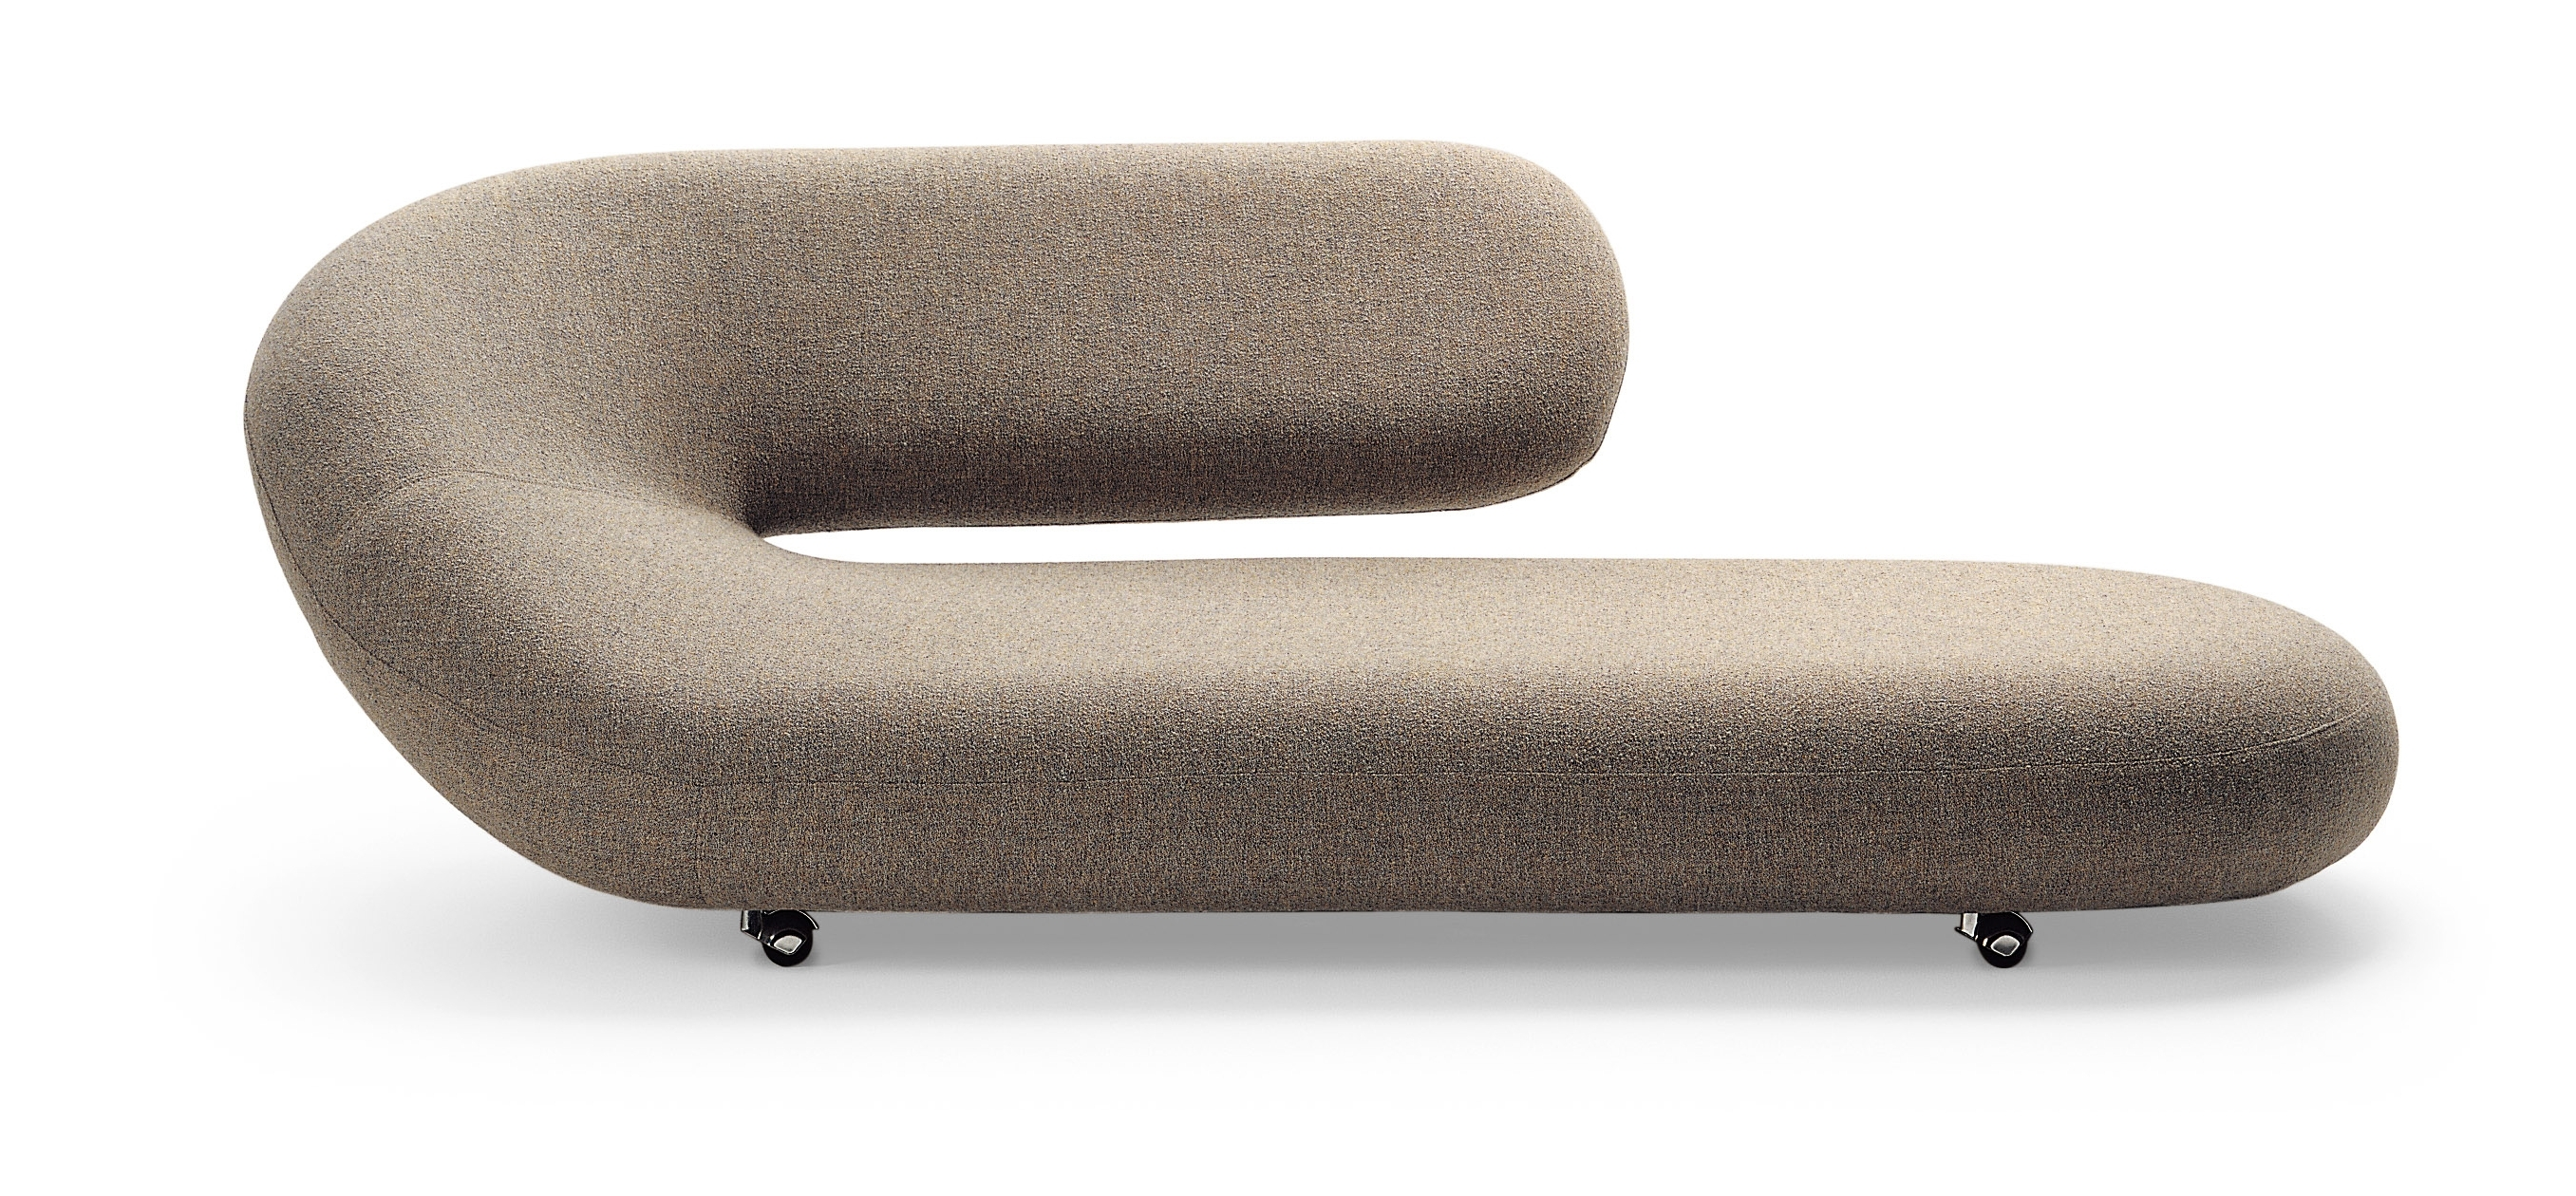 Modern Leather Chaise Longues For Famous Fresh Contemporary Leather Chaise Lounge # (View 9 of 15)